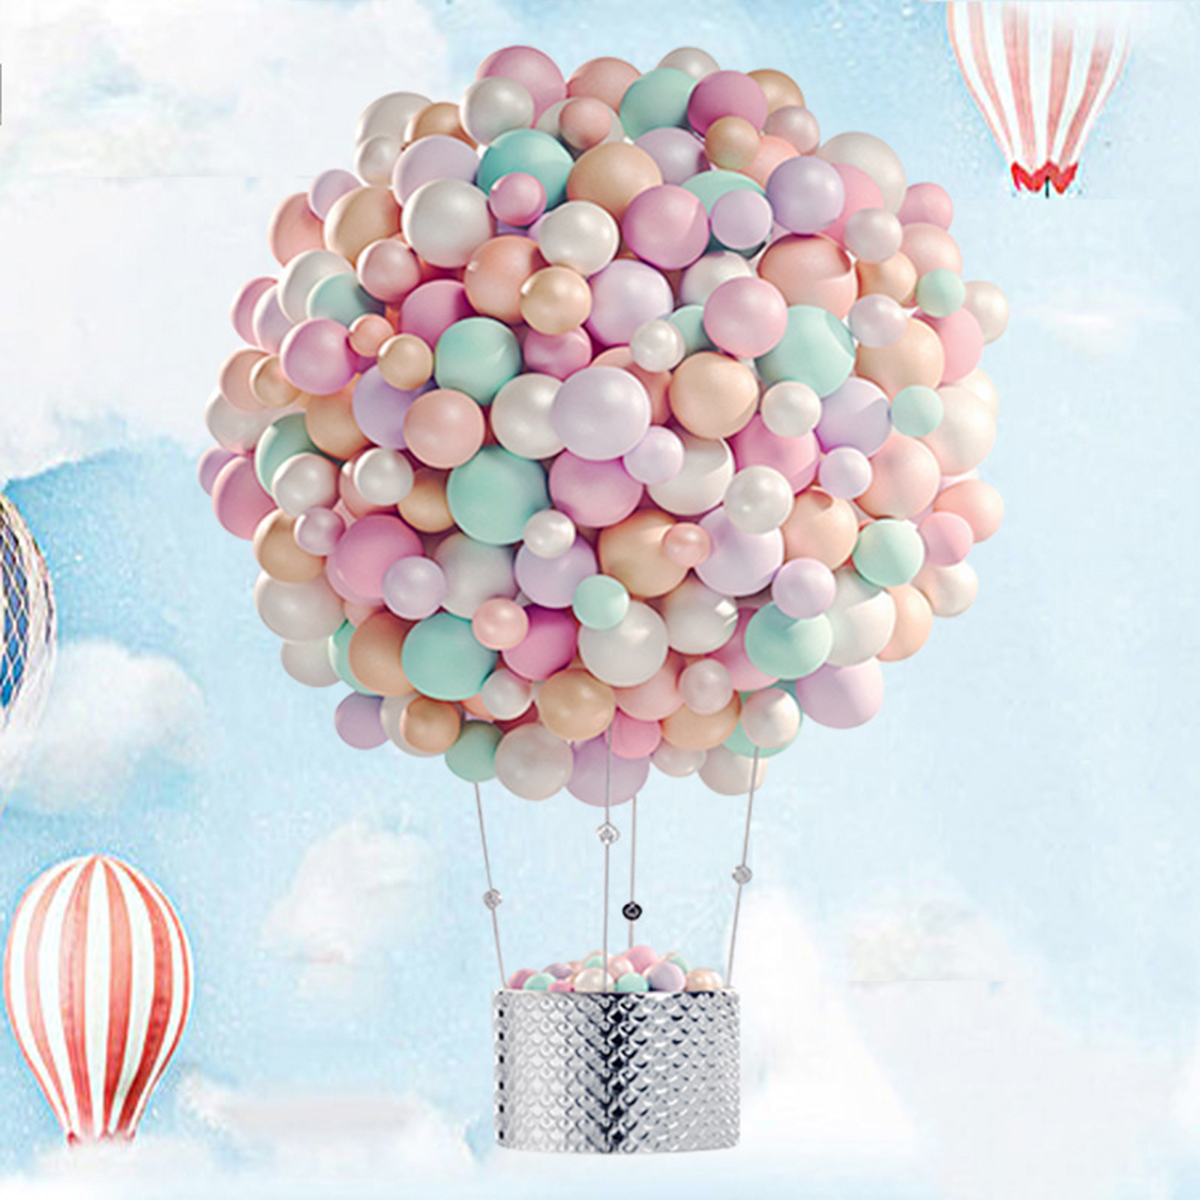 Wholesale 100 Pcs / Lot Latex Round Balloons Thicken 10 Inch 2.3g Wedding Birthday Party Supplies Kids Toys